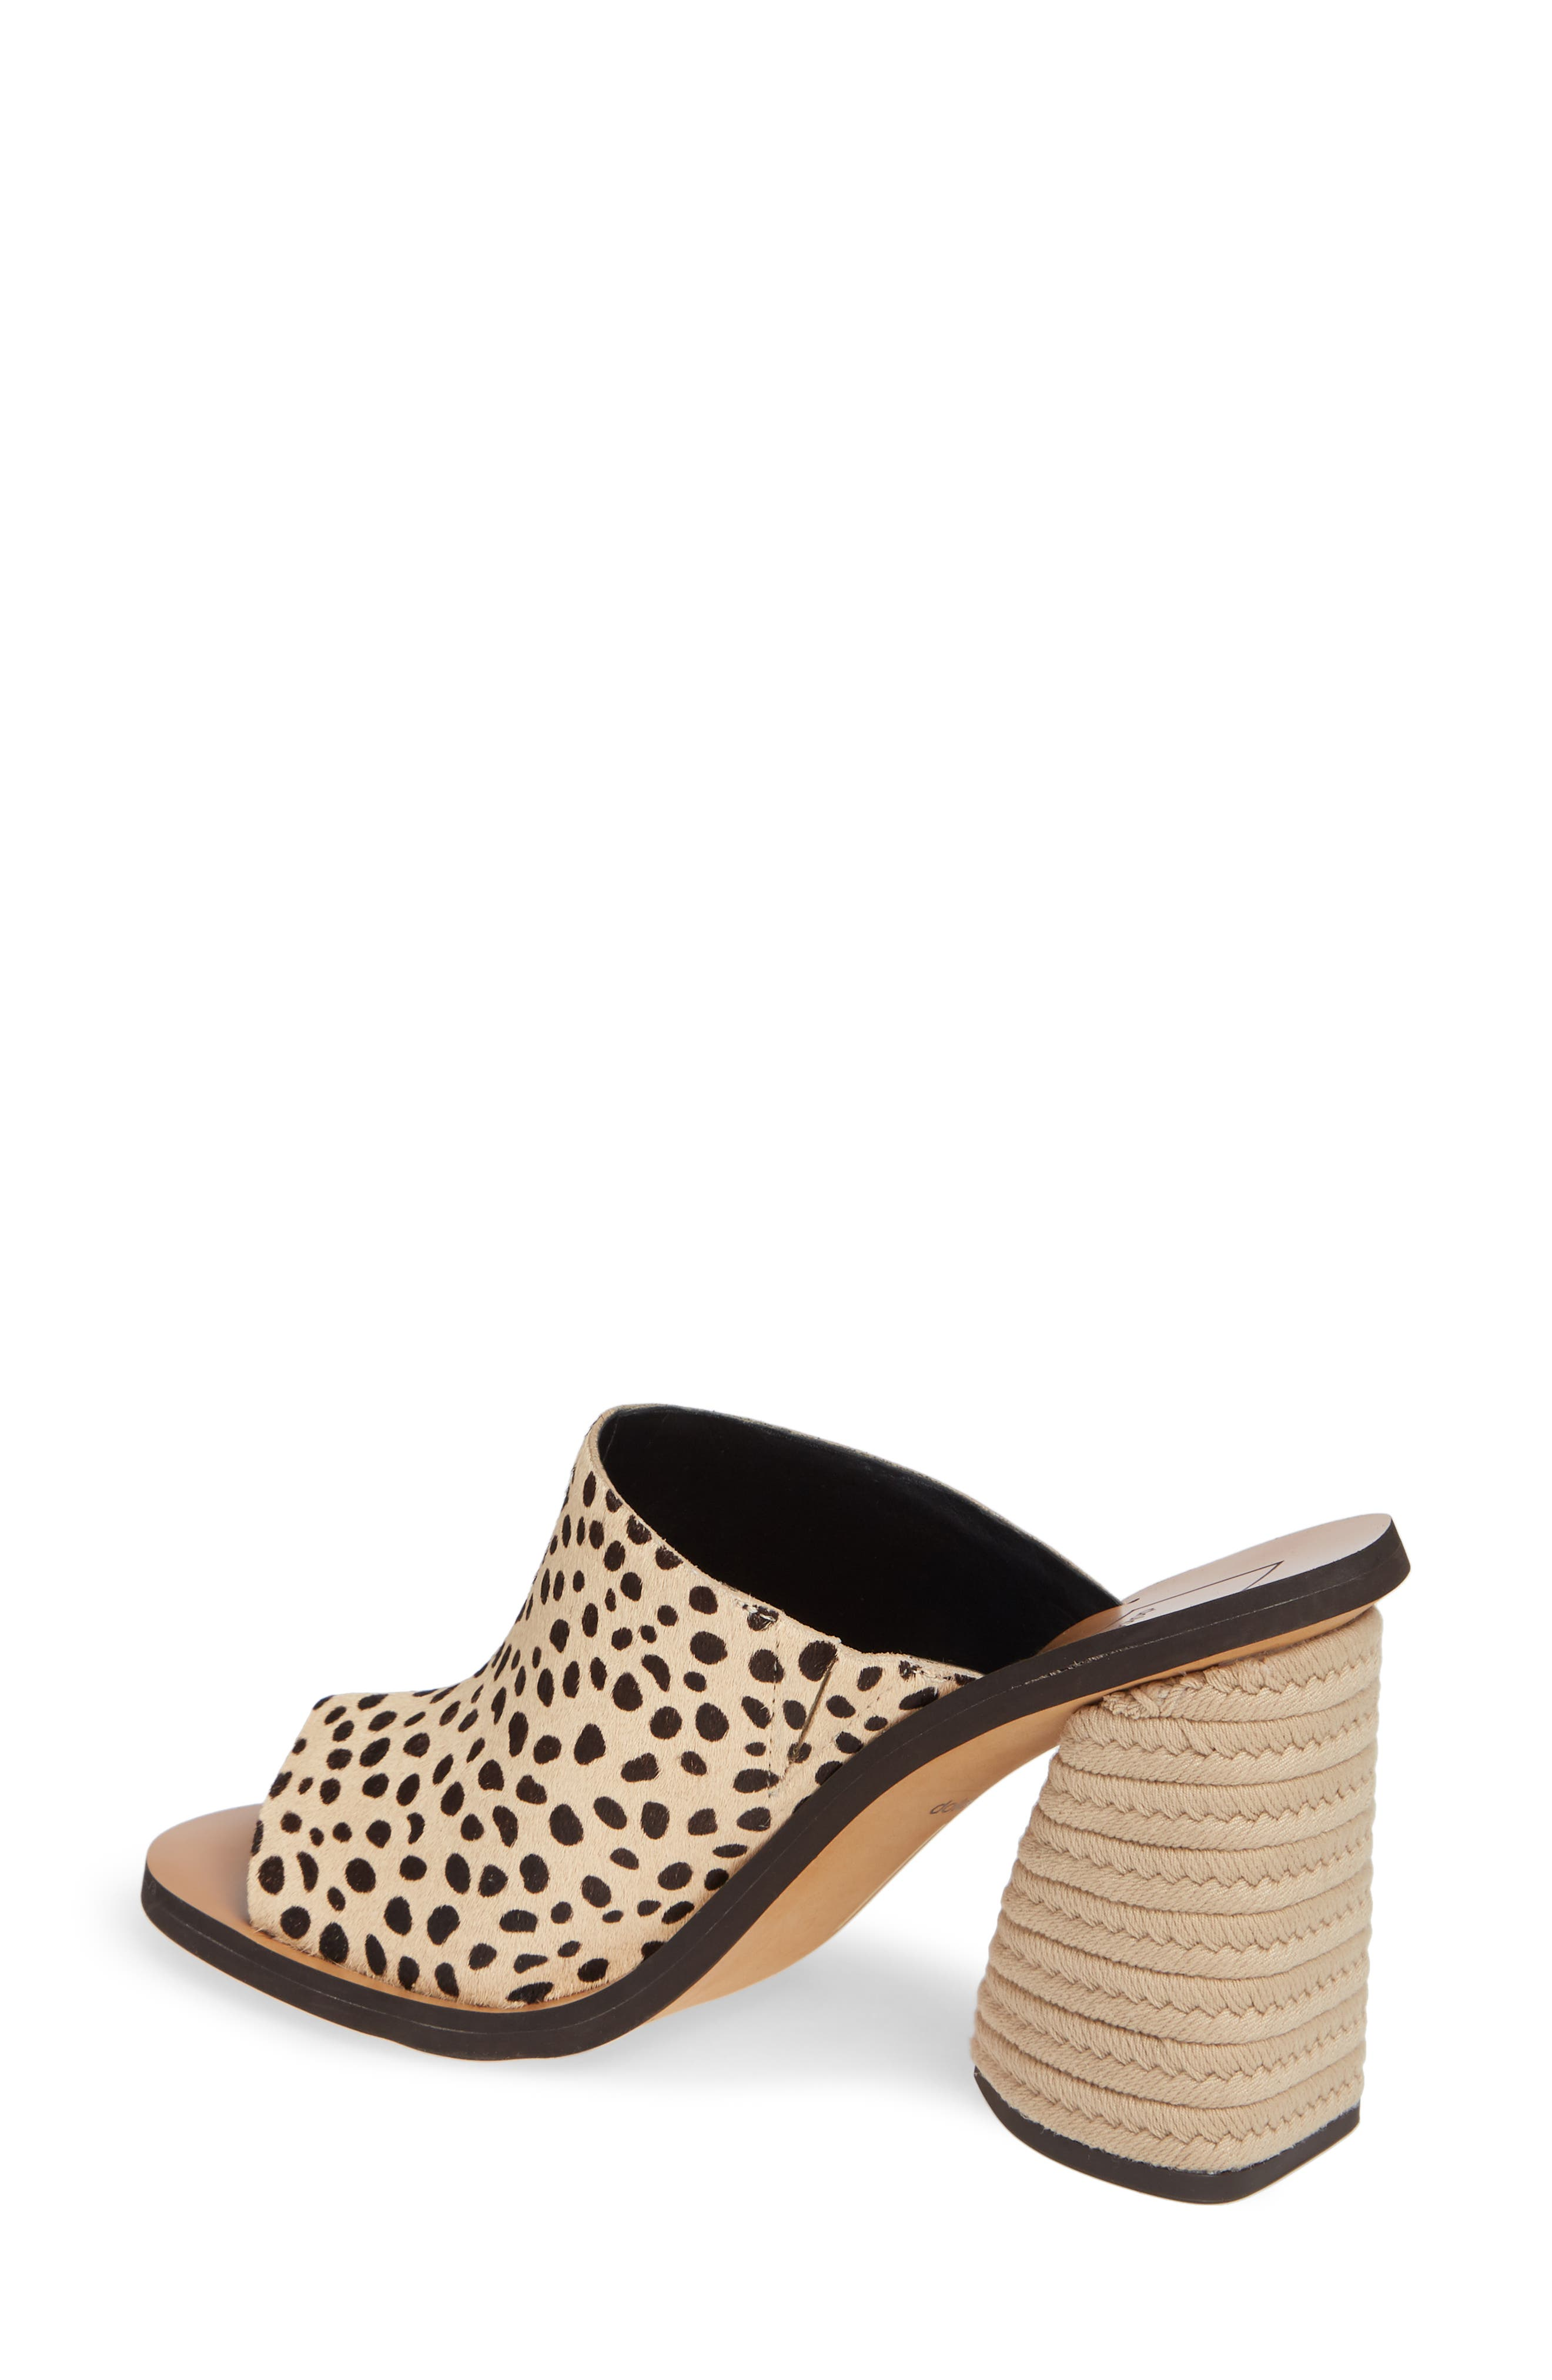 DOLCE VITA, Alba Braided Heel Mule Sandal, Alternate thumbnail 2, color, LEOPARD CALF HAIR